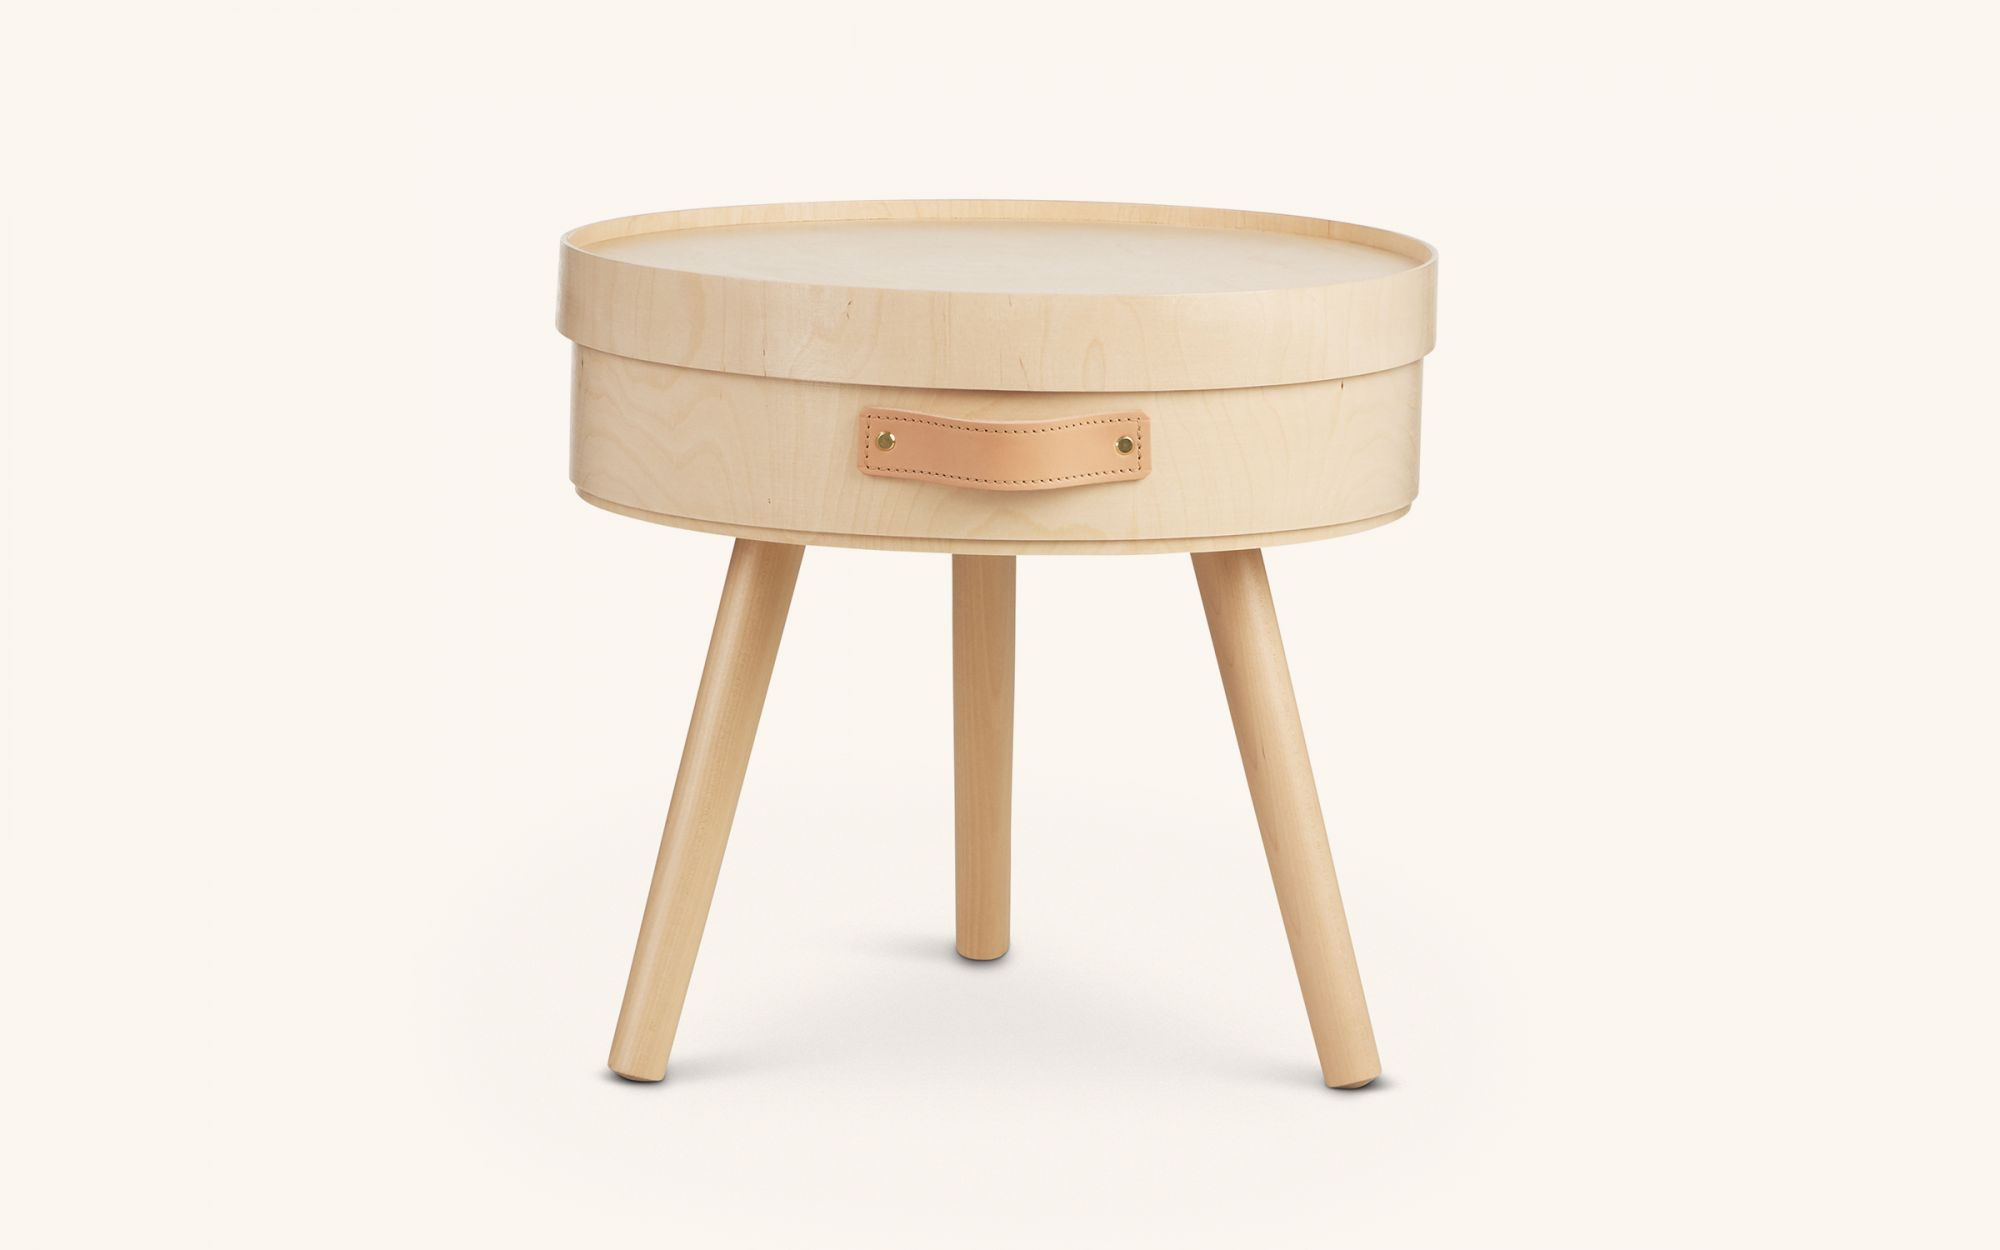 Aski Sidetable - XL size leg birch